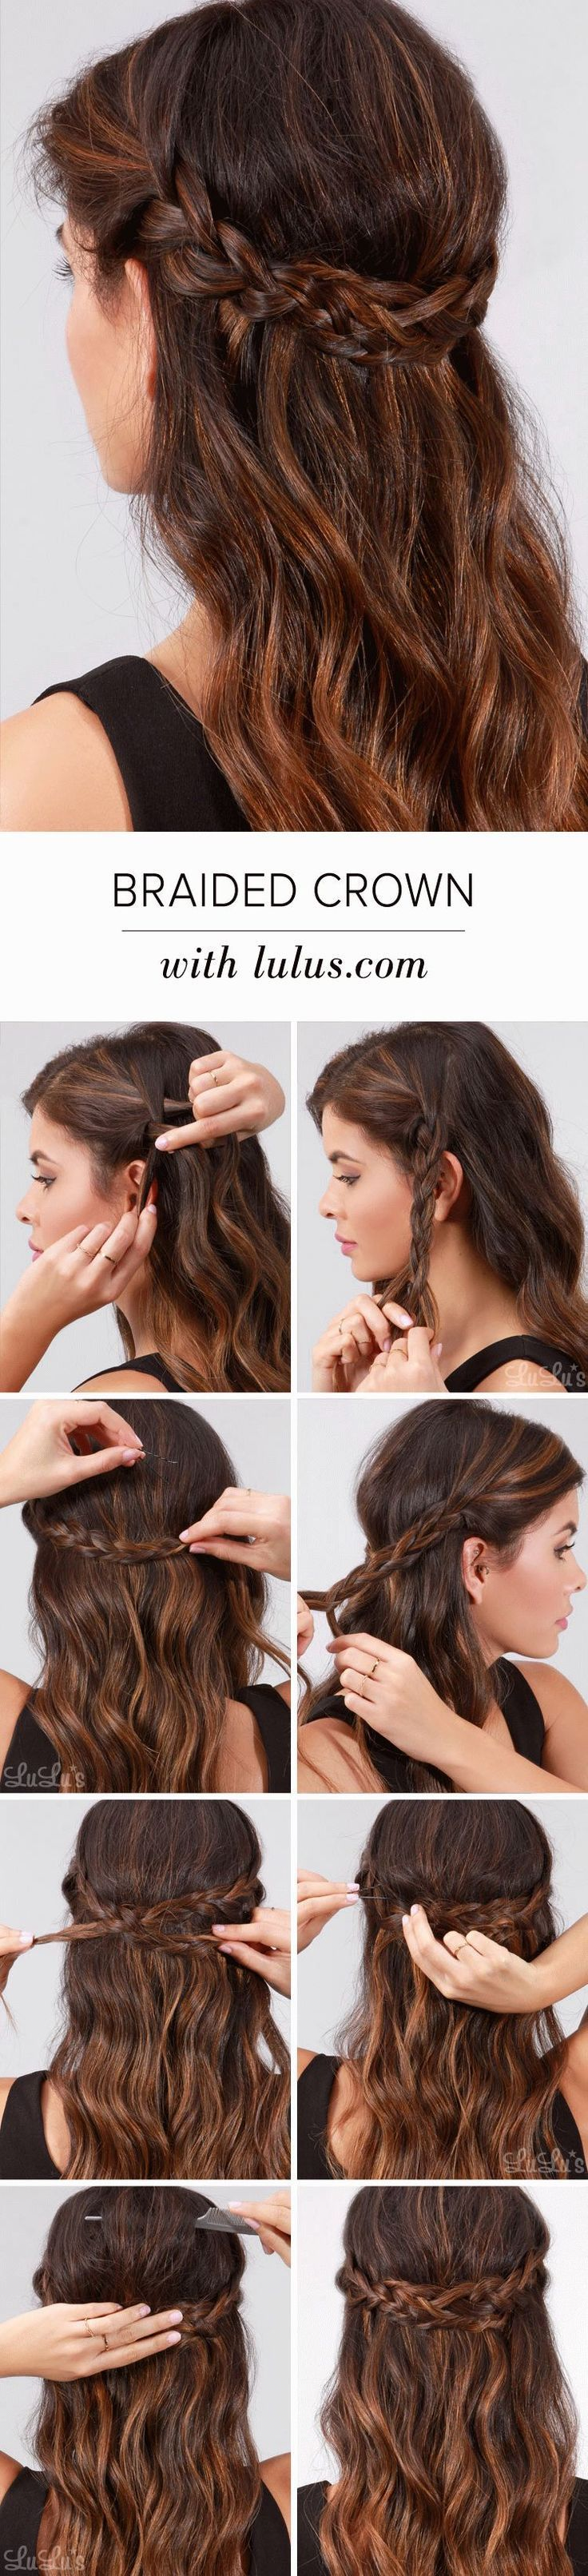 Braided Crown Hair Tutorial | Beauty Tips Magazine